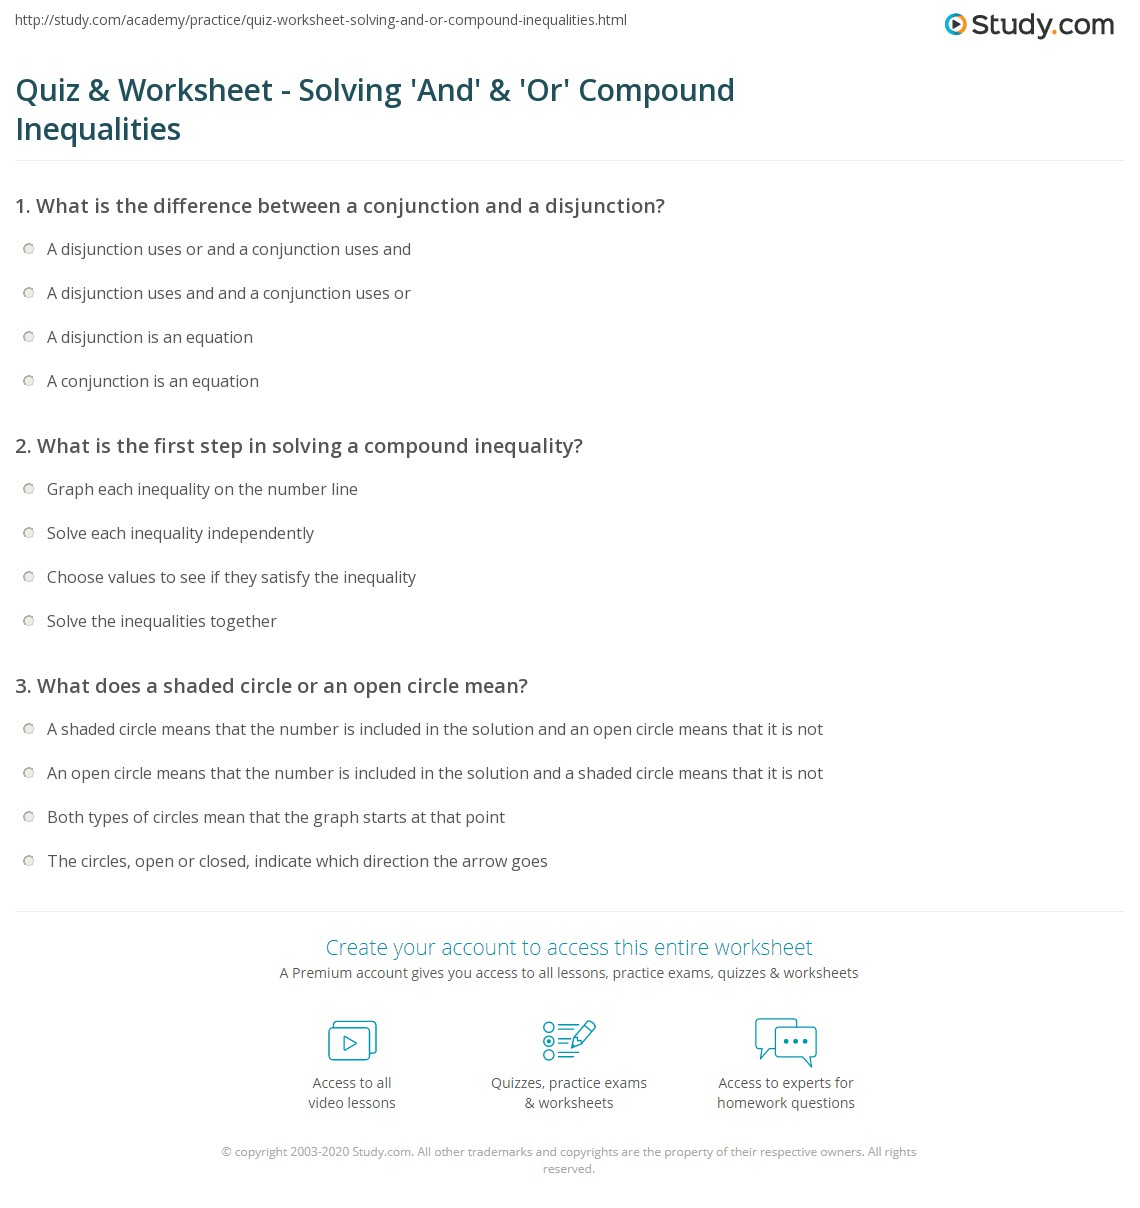 Quiz & Worksheet - Solving 'And' & 'Or' Compound Inequalities ...